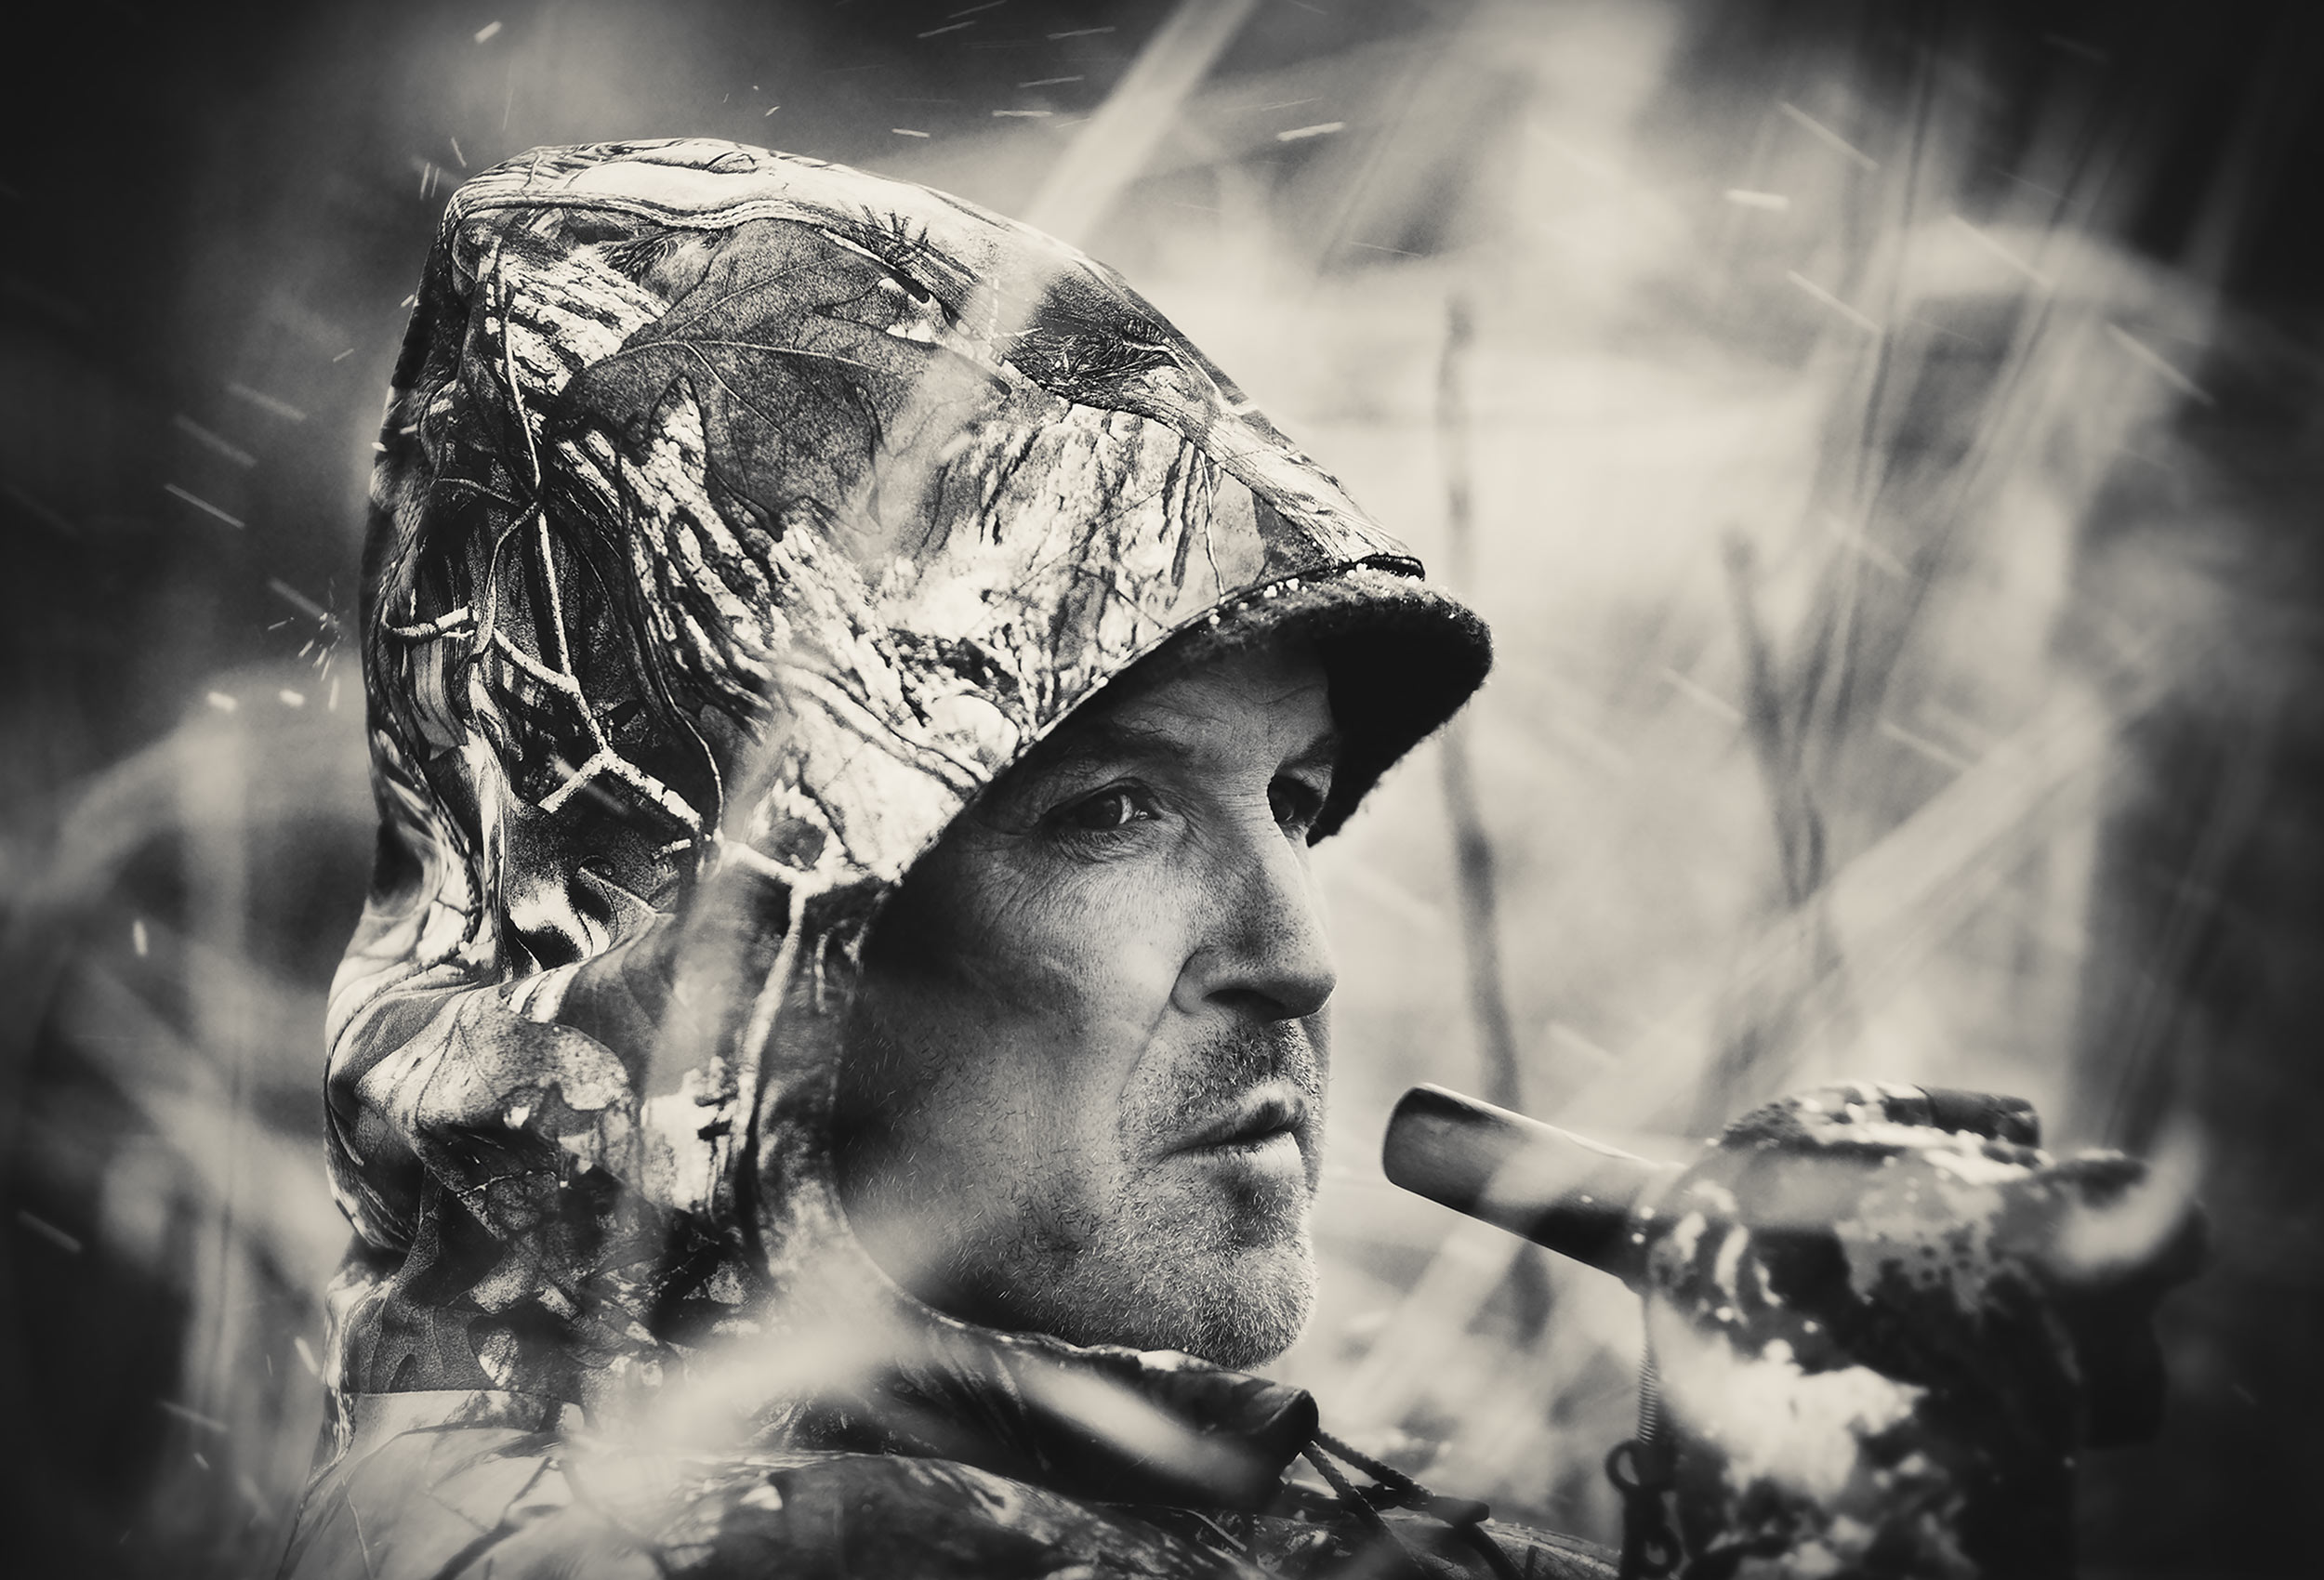 Duck hunter in a blind looking up towards the sky